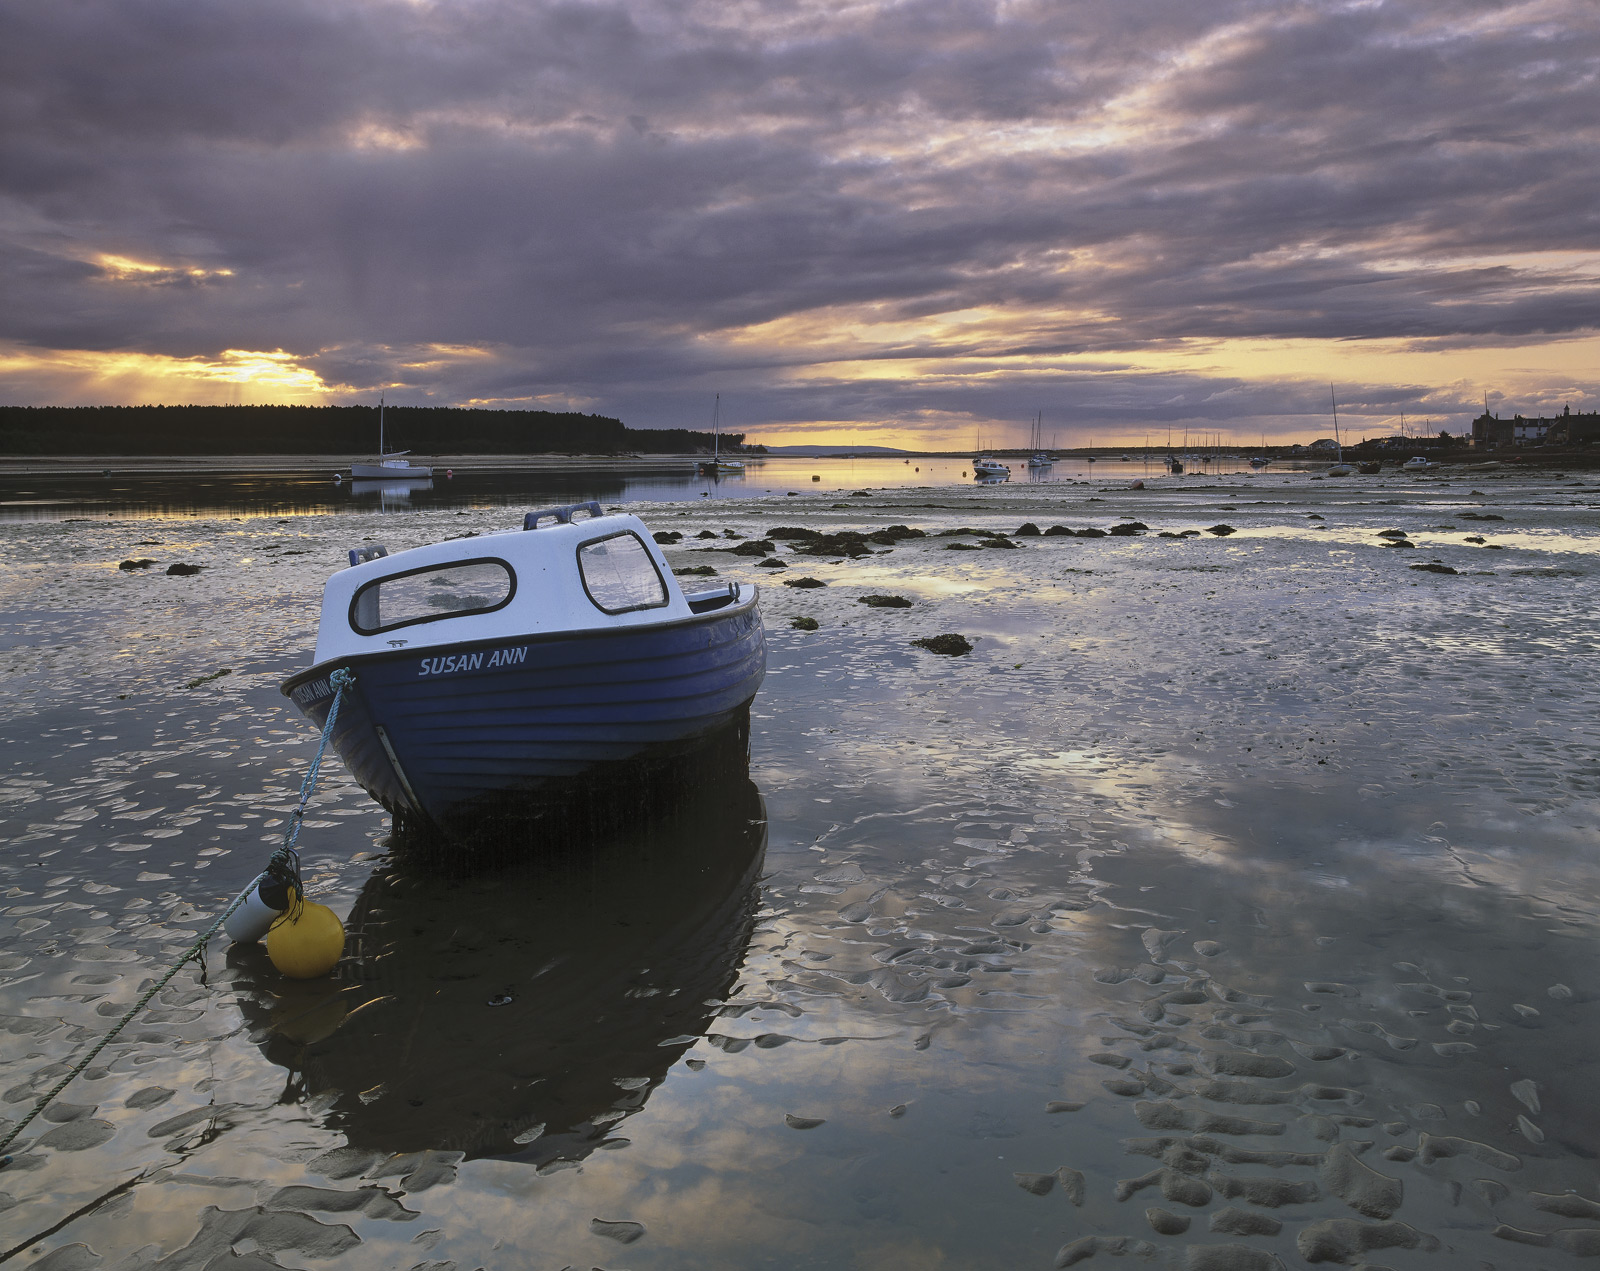 Susan Ann, Findhorn, Moray, Scotland, promising, evening, summer, estuary, wet, sand, beached, boats, tide pools, photo